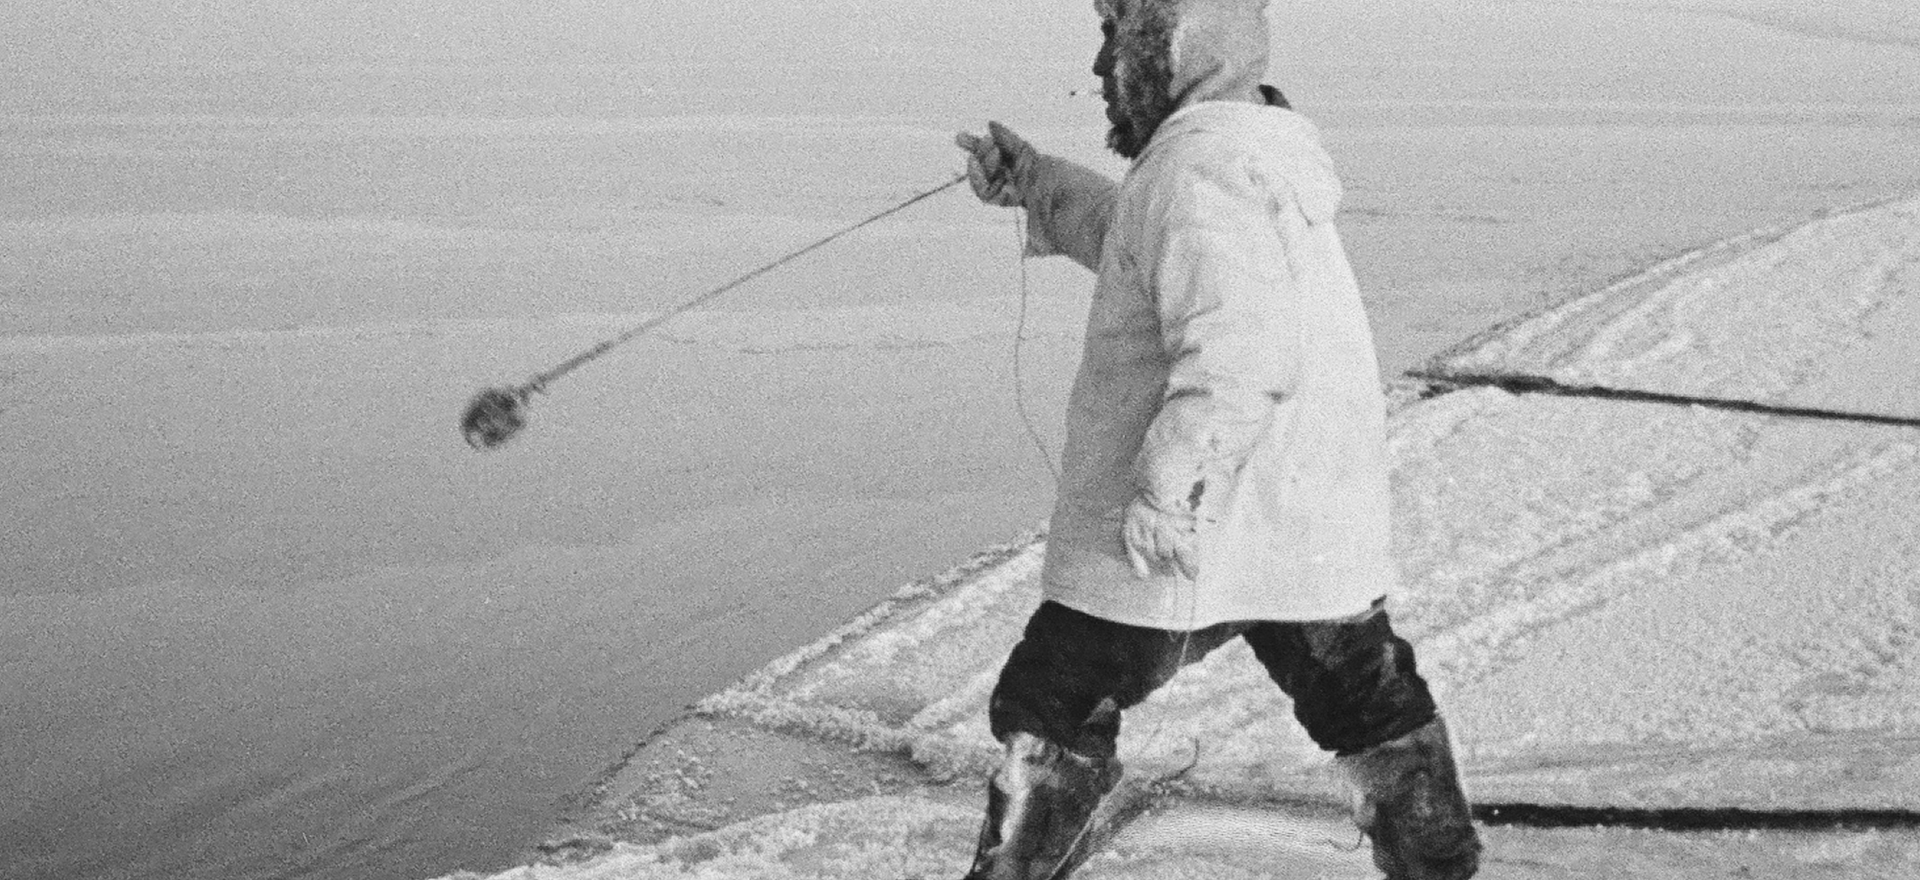 Anaqqaq Ekak tossing a manaq (wooden float with metal hooks) to retrieve a seal shot in open water. He's standing on his unaaq to distribute his weight on the thin ice.